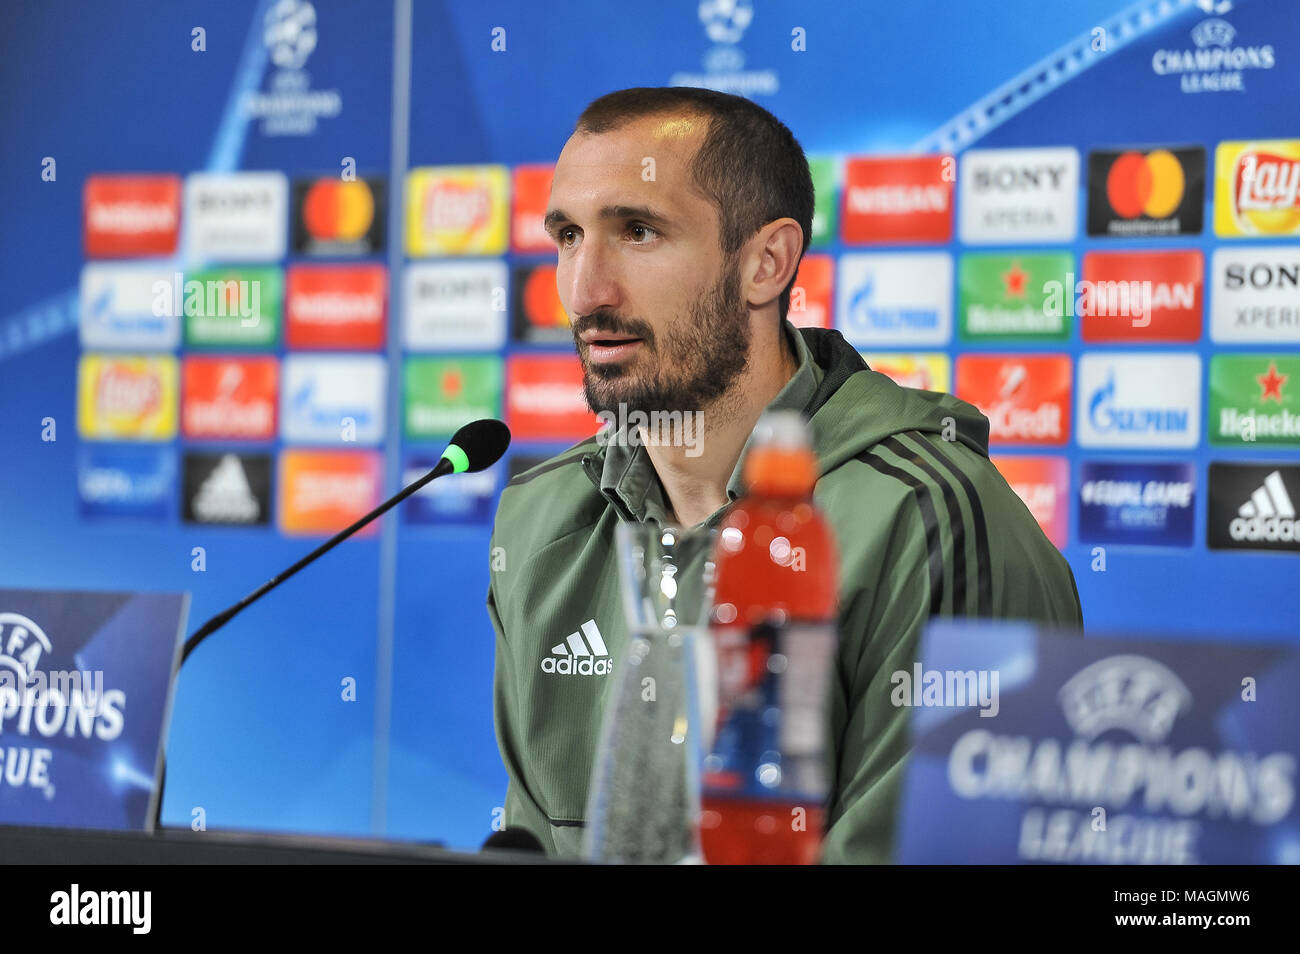 Turin, Italy, 2 April 2018. Giorgio Chiellini (Juventus FC) during the media conference before UEFA Champions League's football match between Juventus FC and Real Madrid CF at Allianz Stadium on 3th April, 2018 in Turin, Italy. Credit: FABIO PETROSINO/Alamy Live News - Stock Image